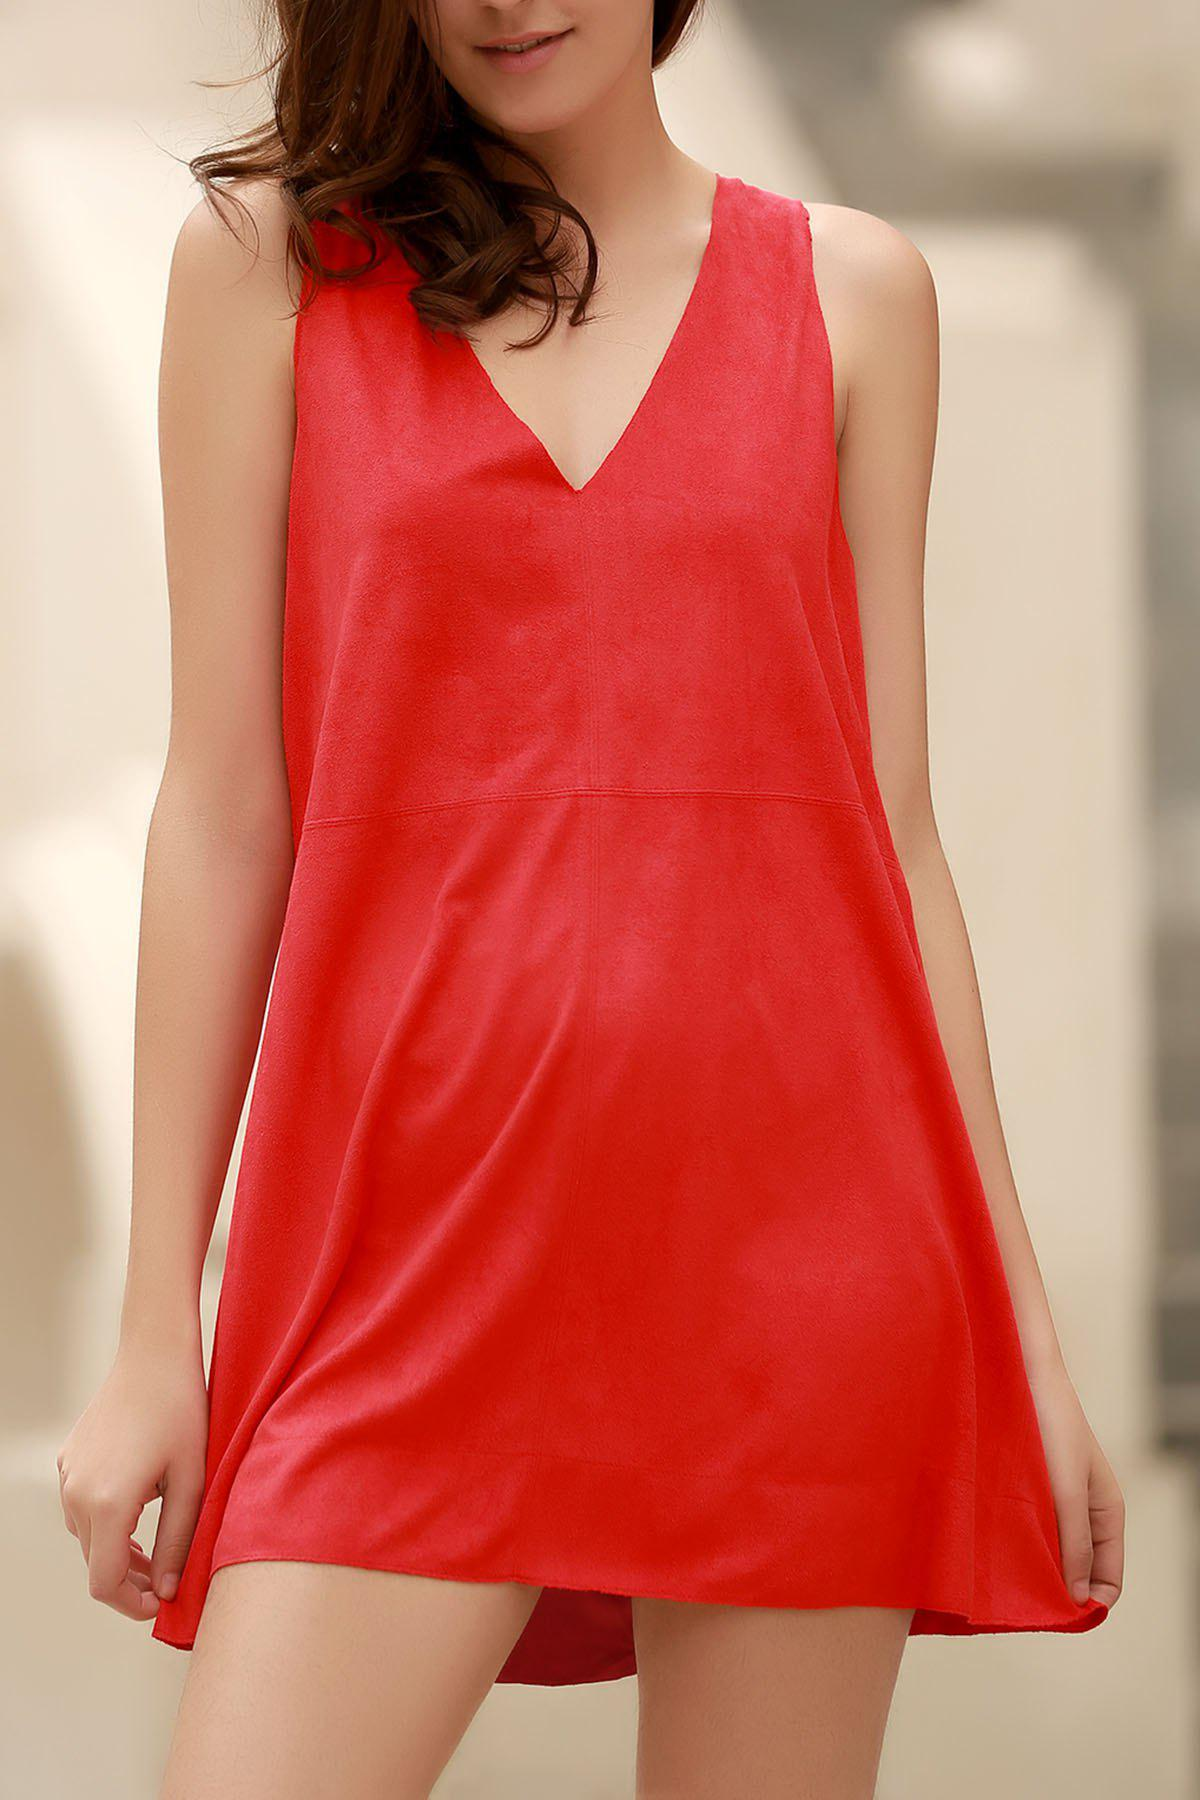 Red Faux Suede Plunging Neck Sleeveless Dress 171792901